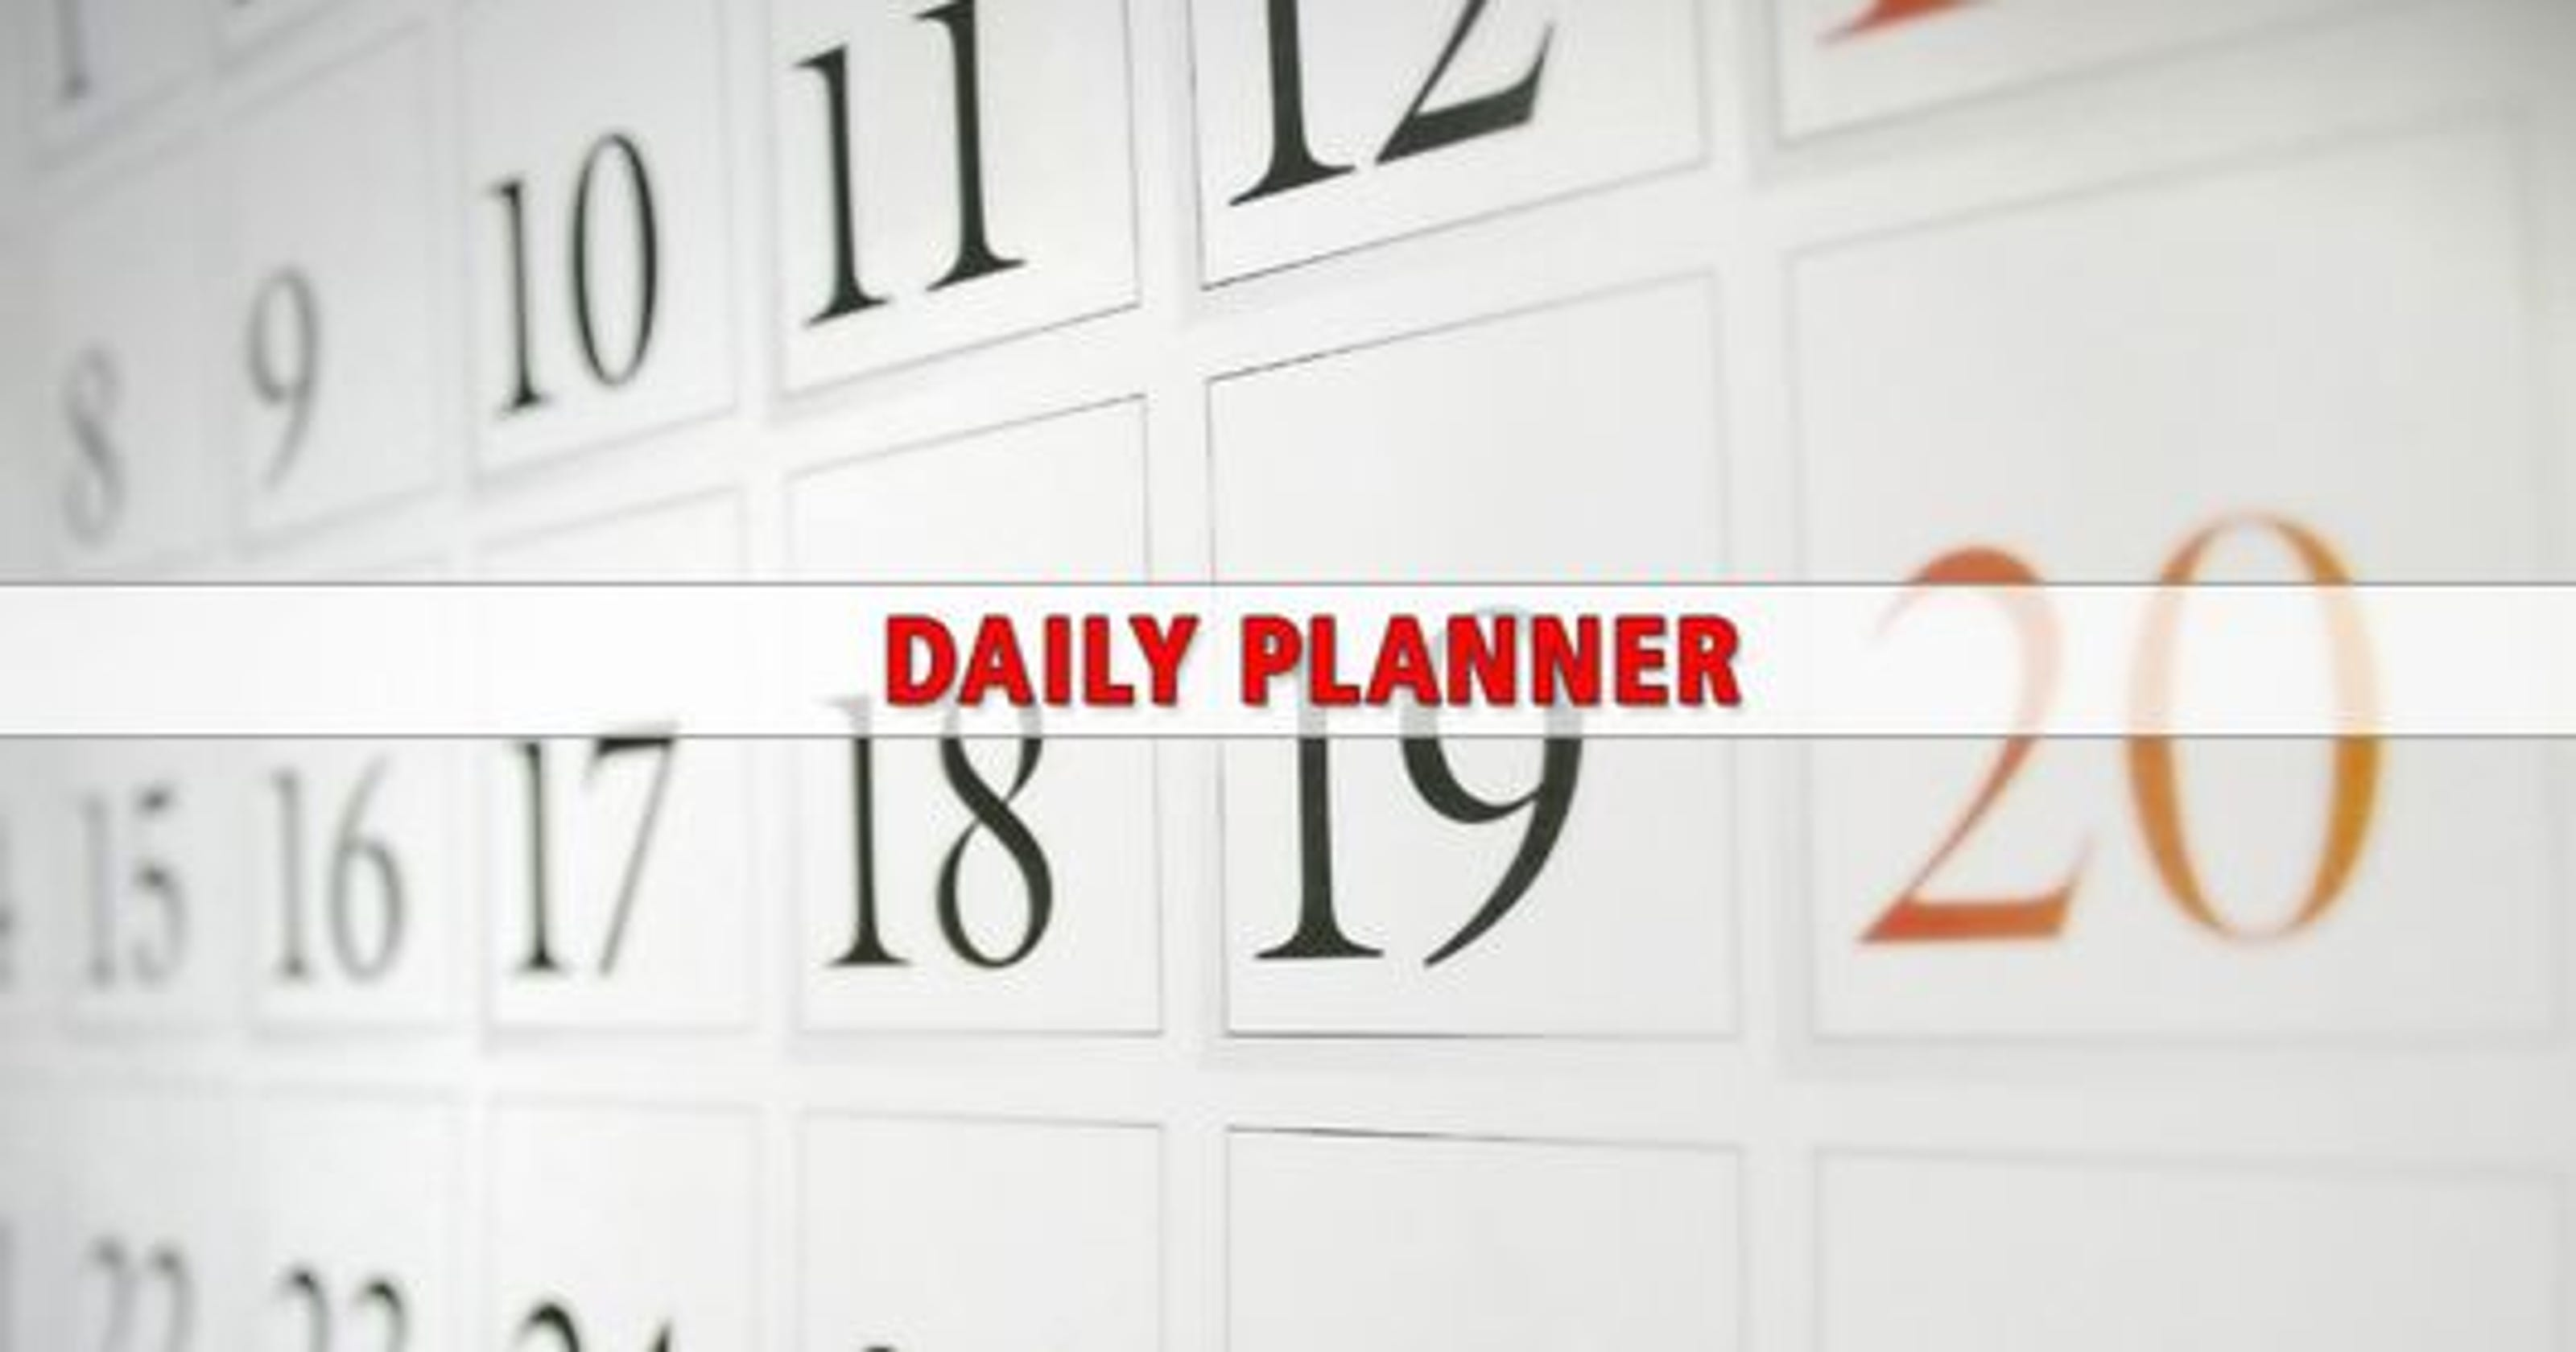 daily planner for nov 1